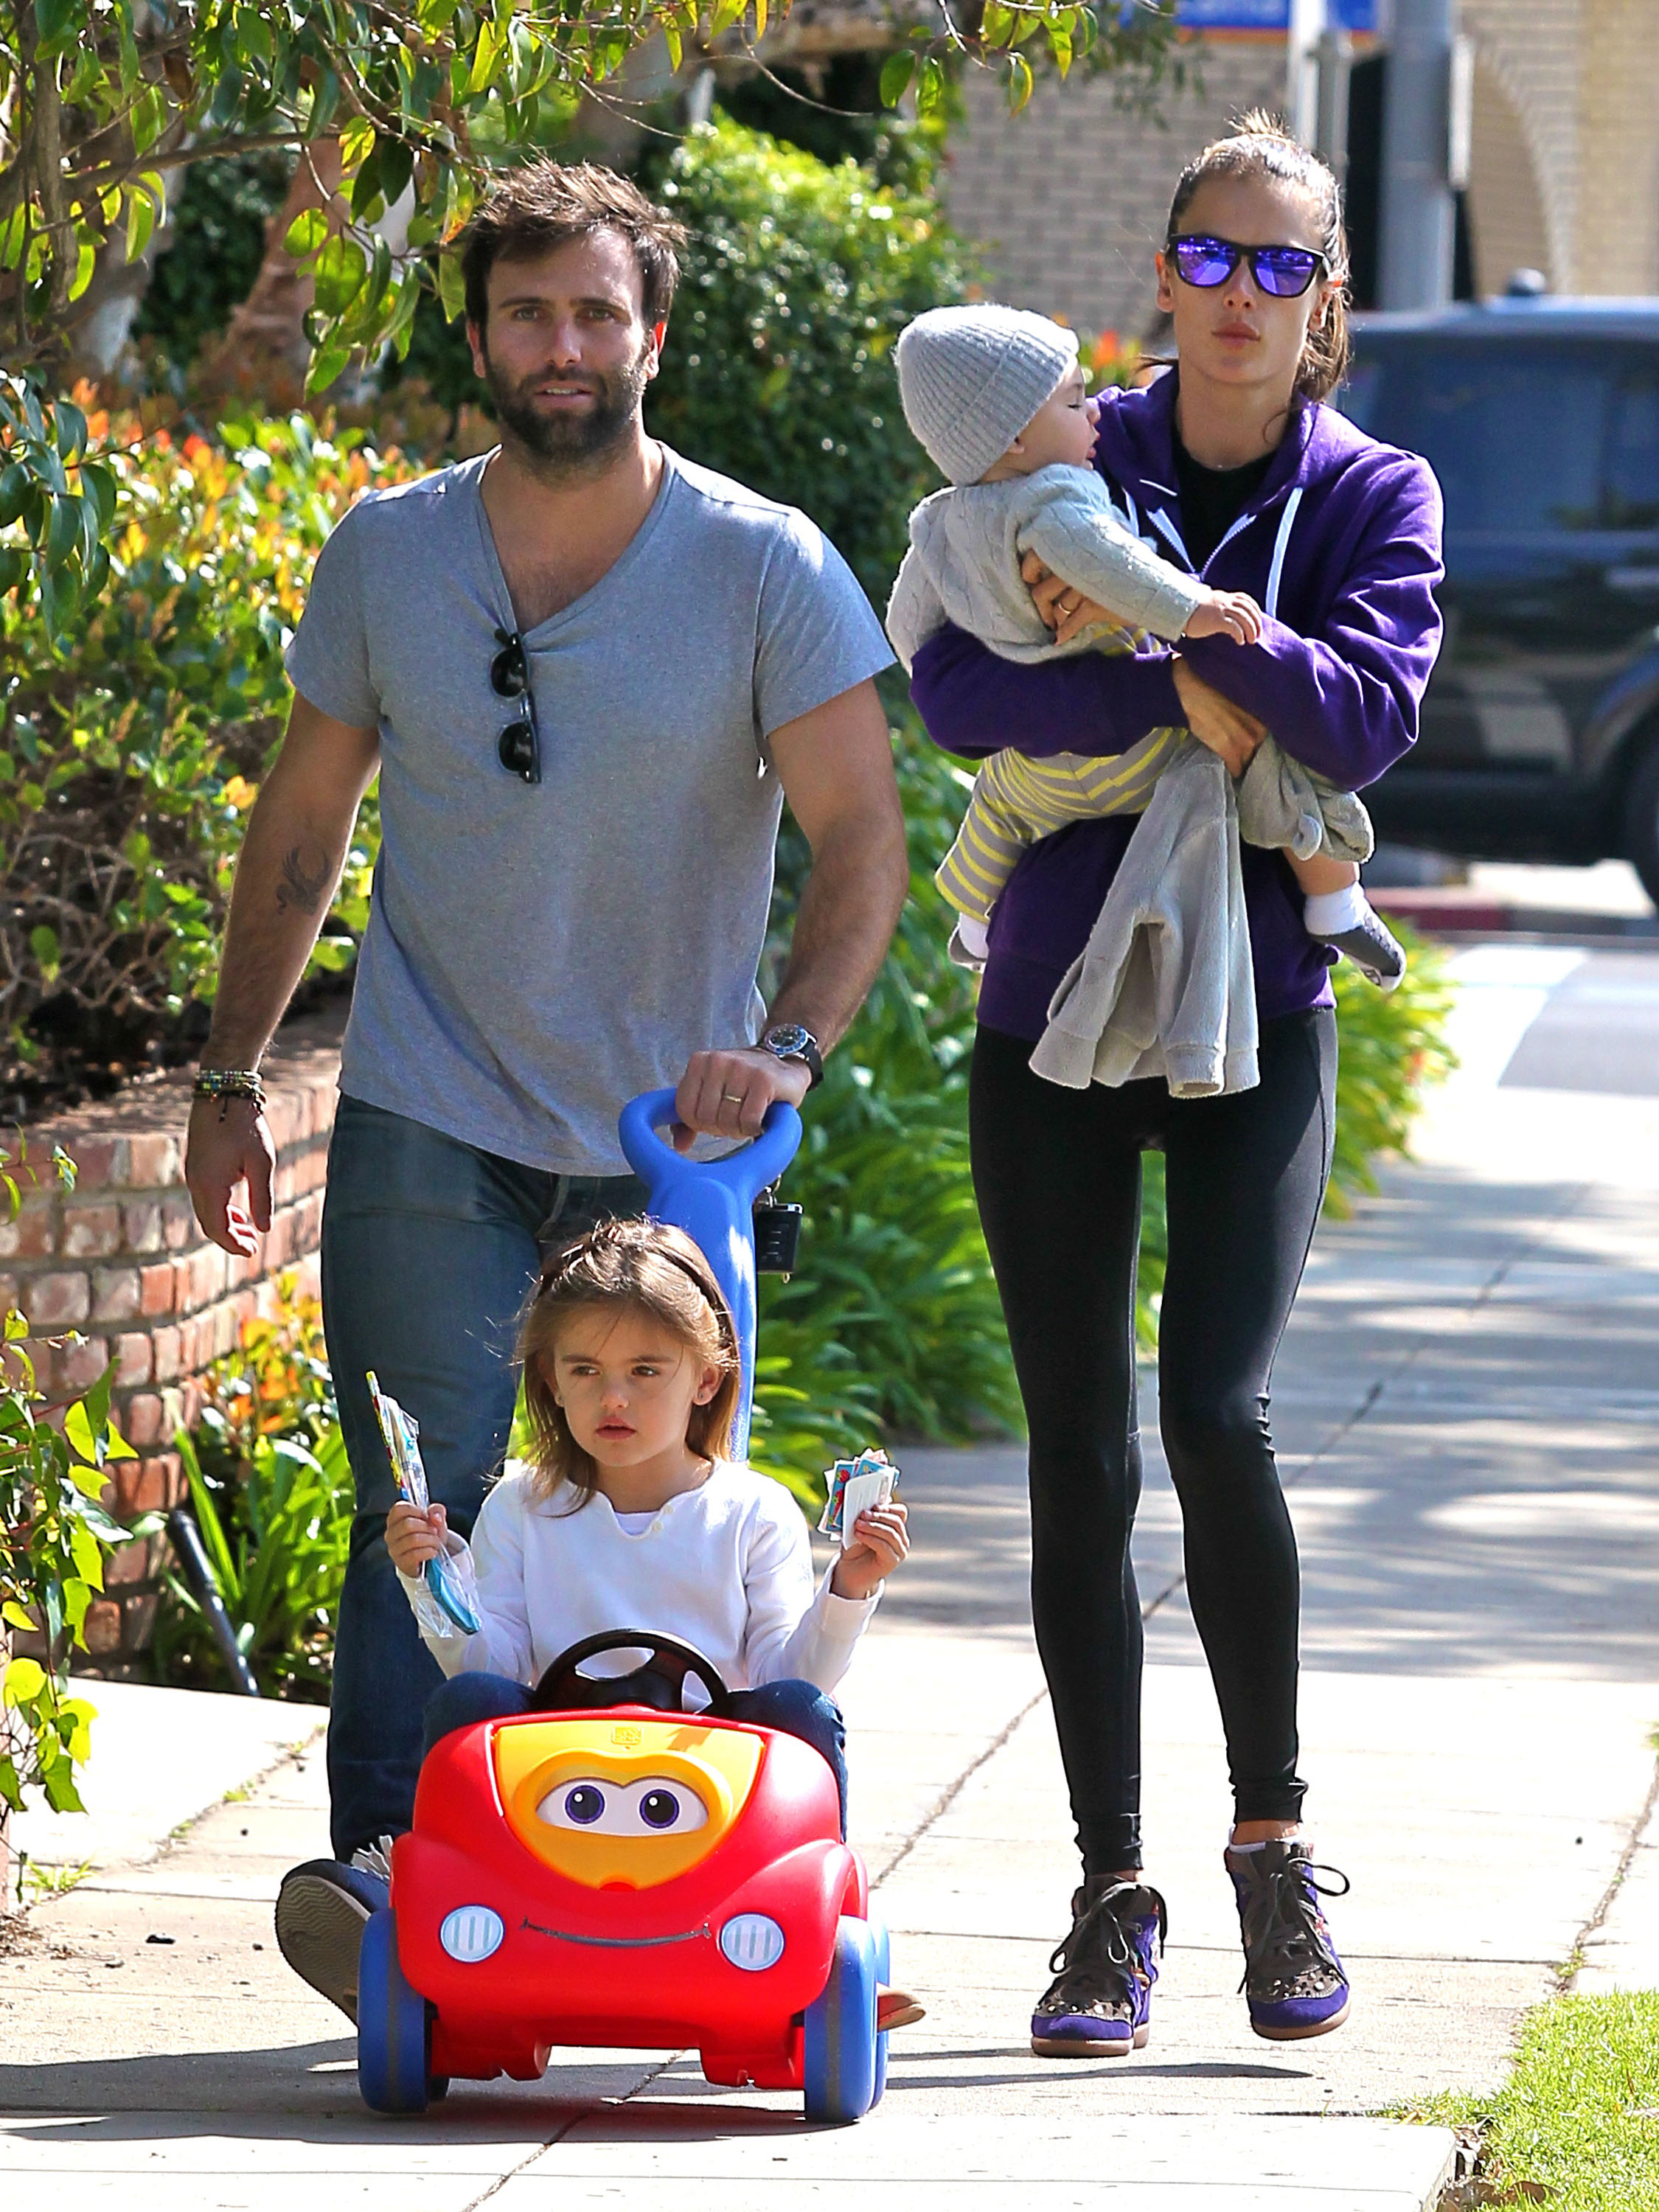 Alessandra Ambrosio Spends the Day Strolling With Her Family in LA